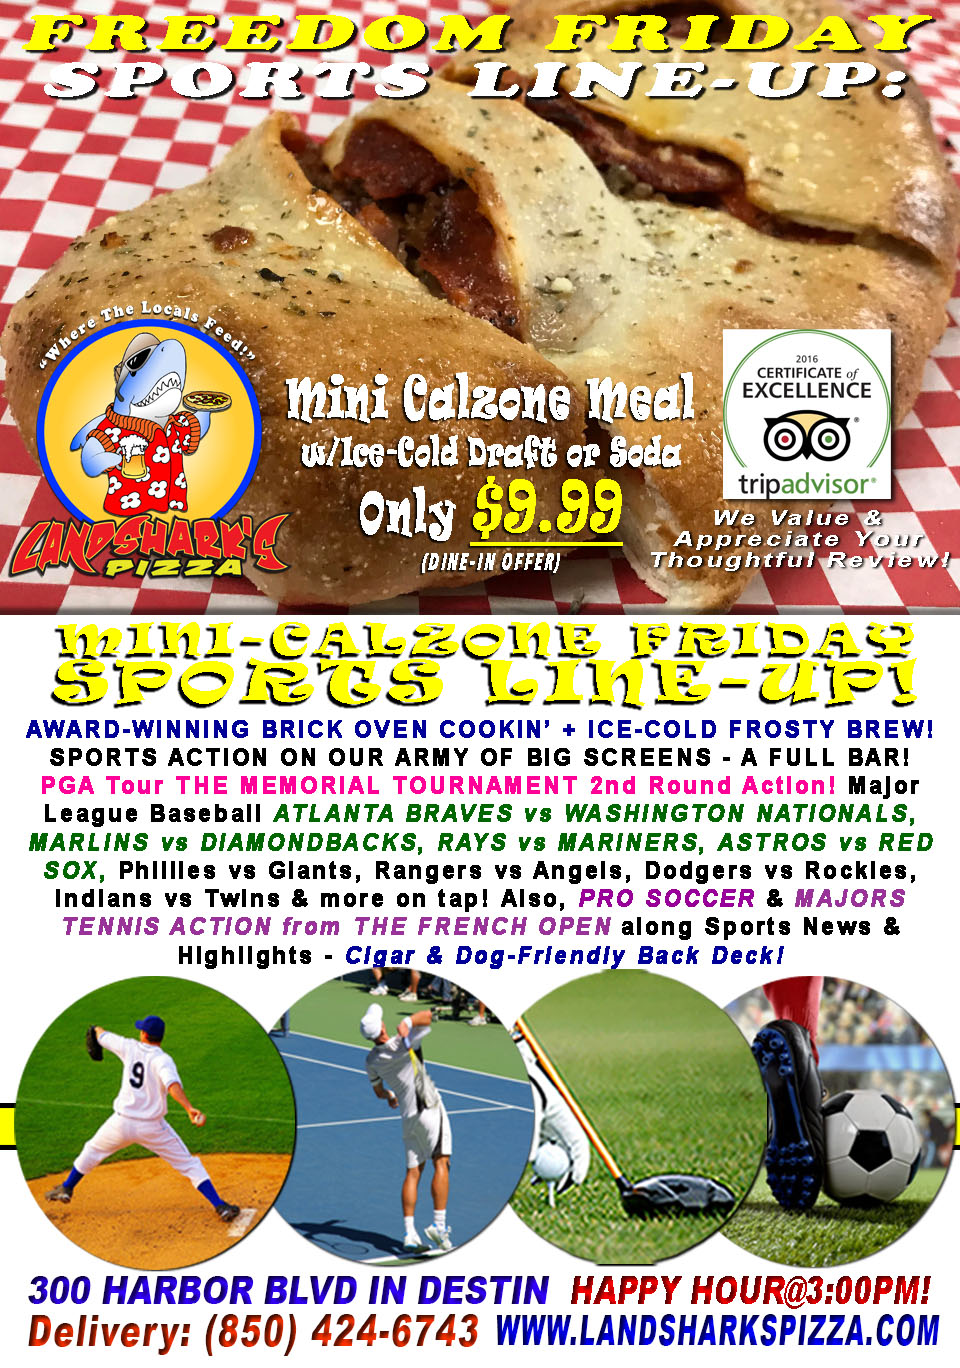 Tasty Freedom Friday $9.99 2-Top Calzone & Brew|FRENCH OPEN, PGA, BASEBALL & Lots More!